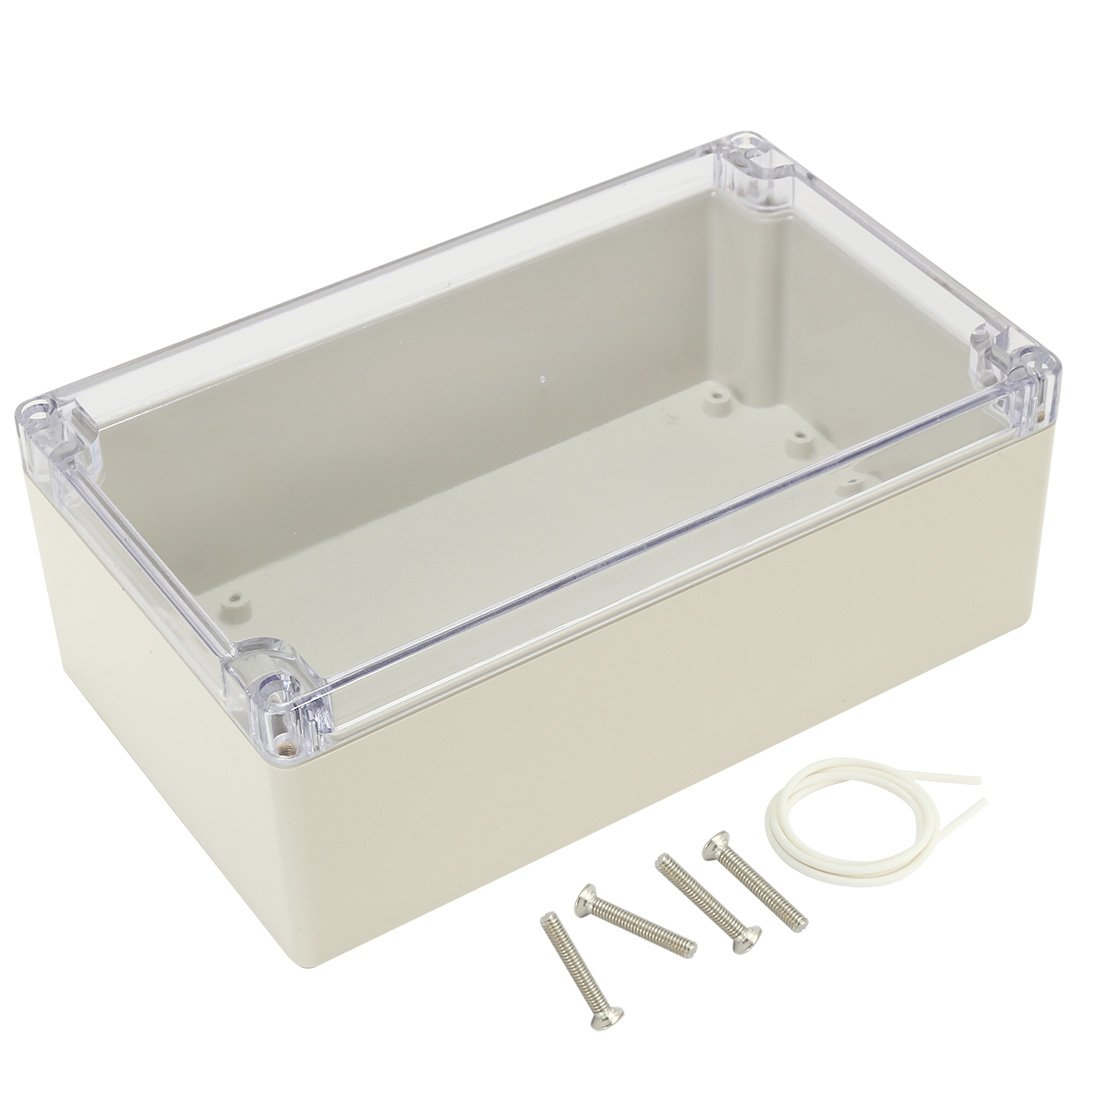 uxcell 7.9x4.7x2.9(200mmx120mmx75mm) ABS Junction Box Universal Project Enclosure w PC Transparent Cover a17031600ux1105